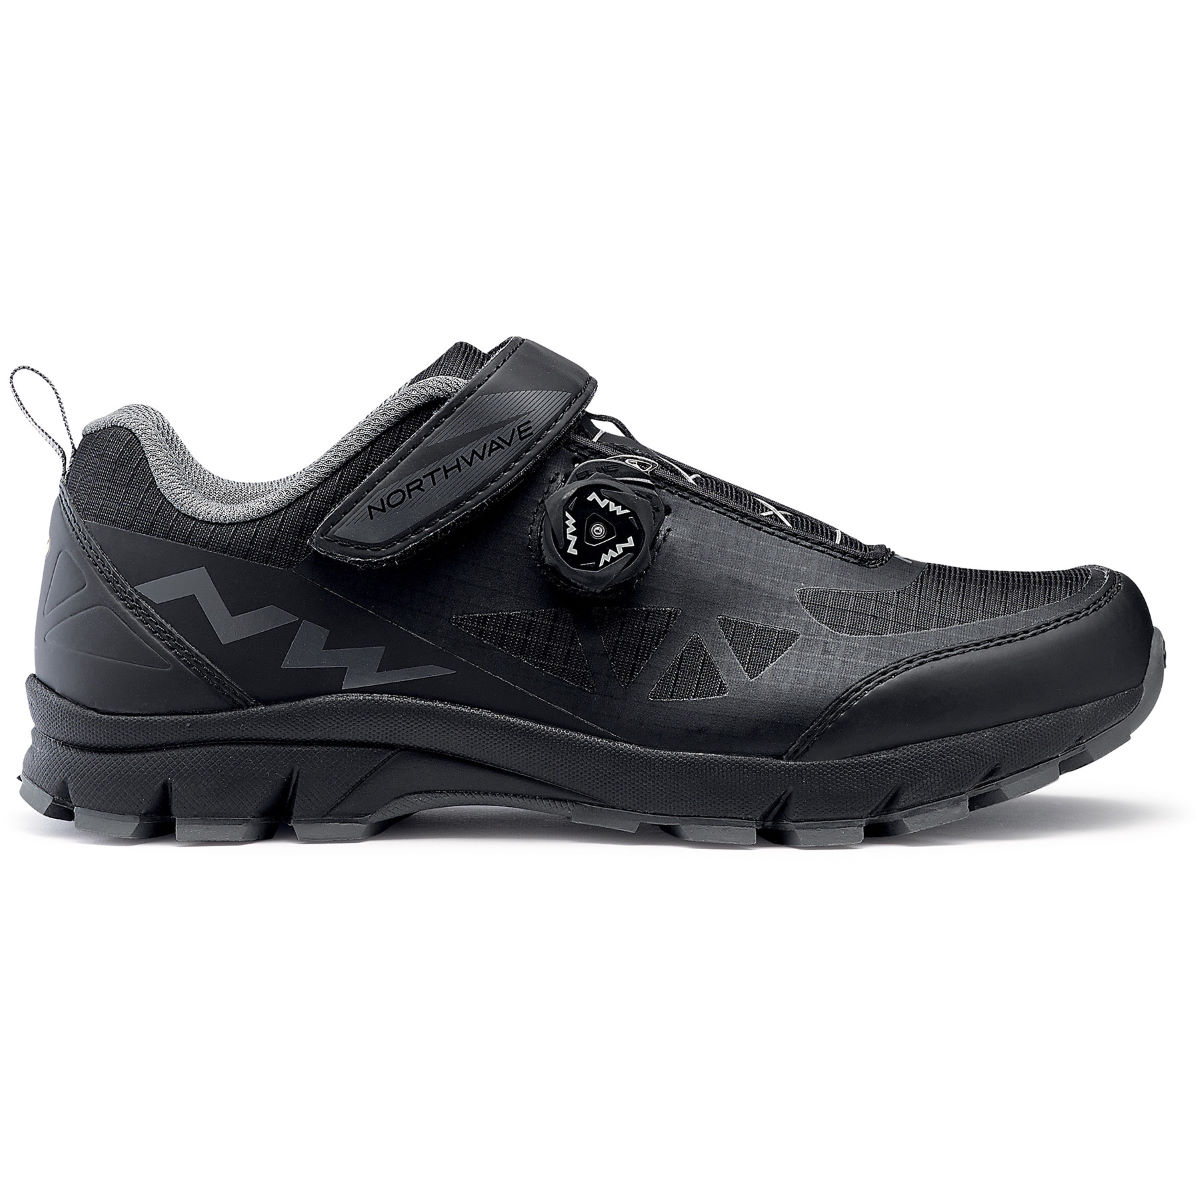 Northwave Northwave Corsair MTB Shoes   Cycling Shoes